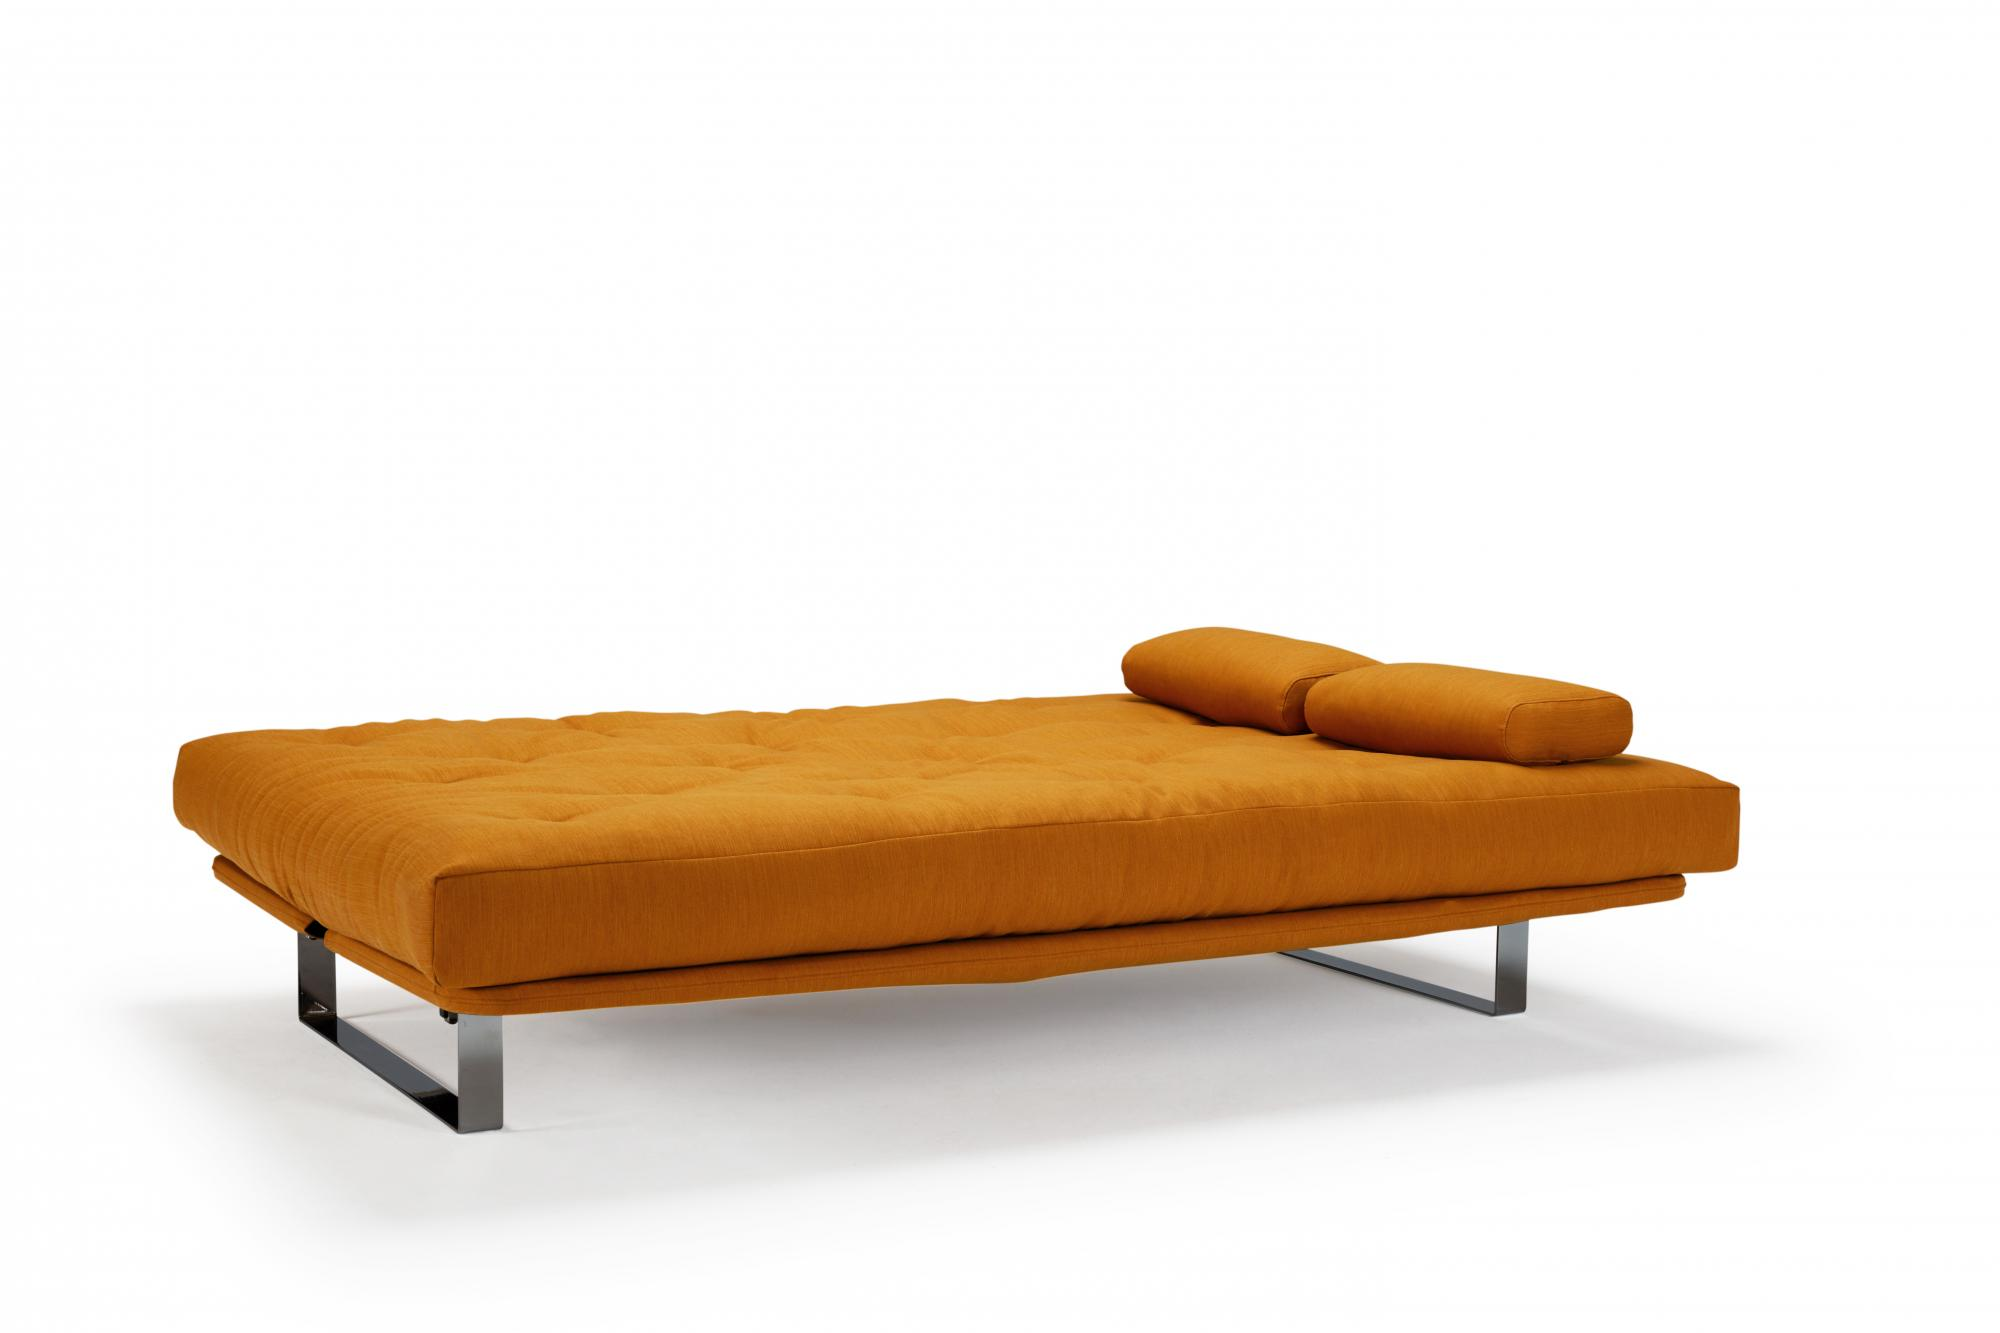 Schlafsofas Dunckerstraße Minimum 140 Multifunctional Sofabed Innovation Sofas